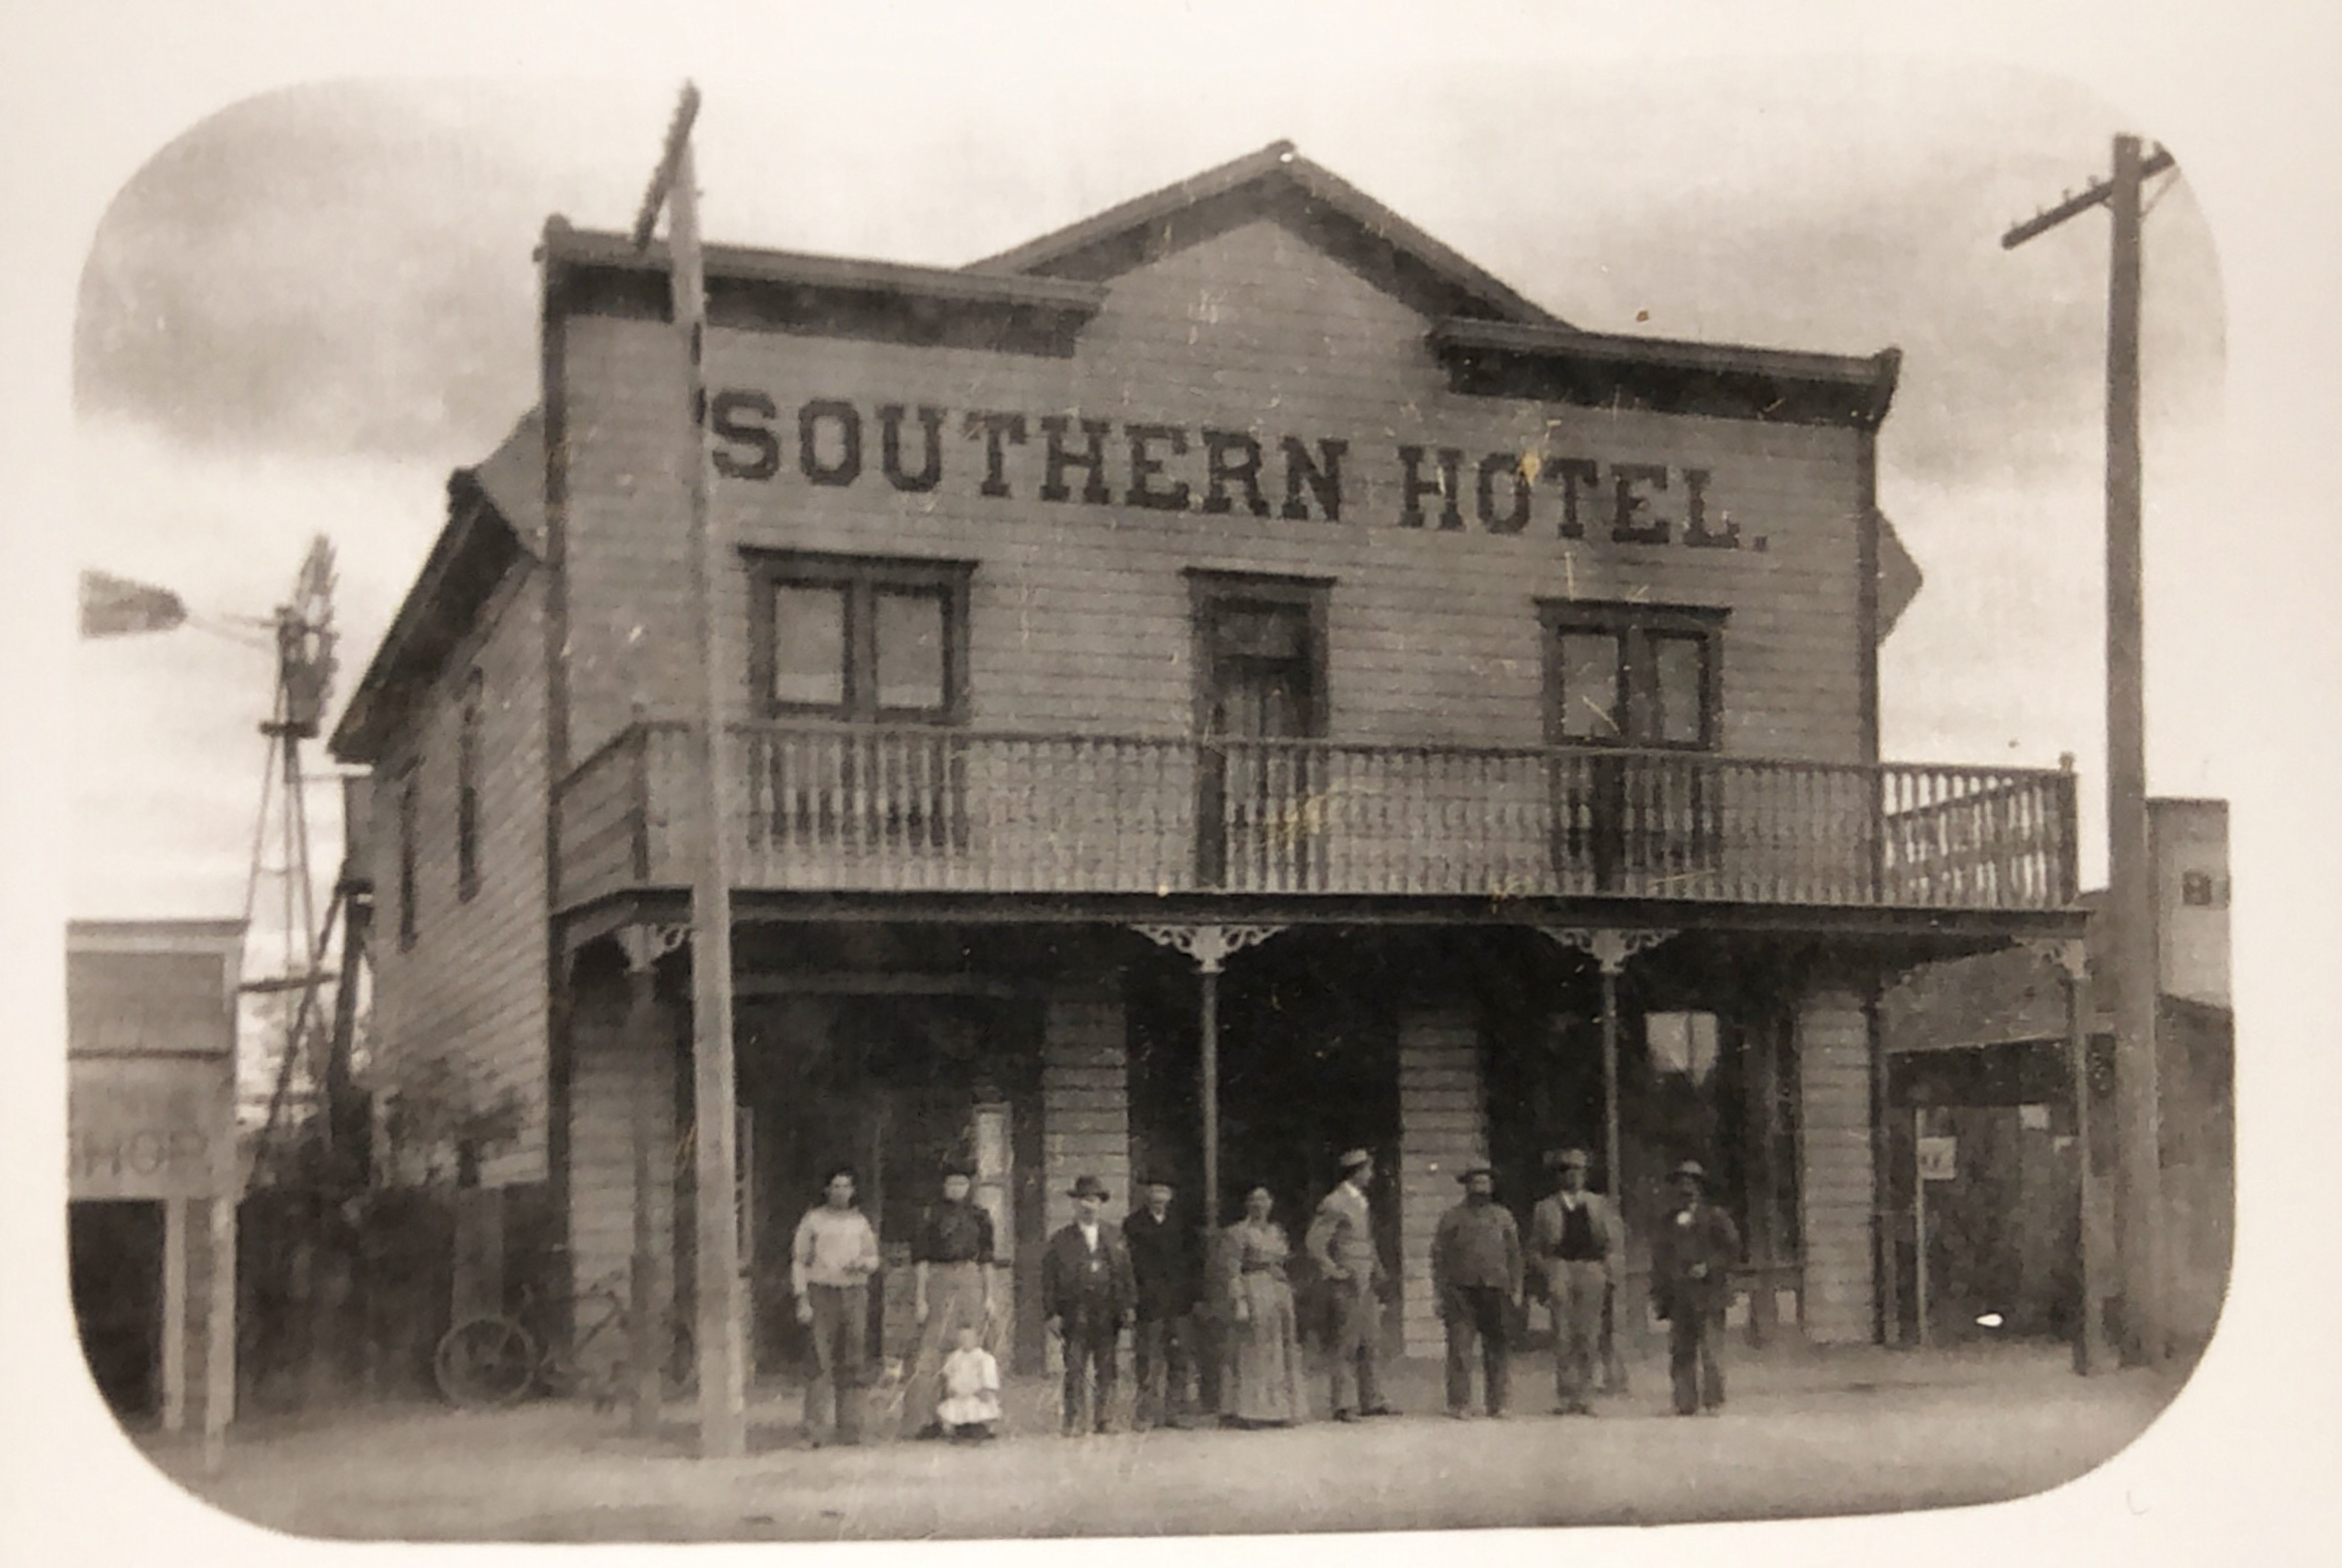 The historic Southern Hotel